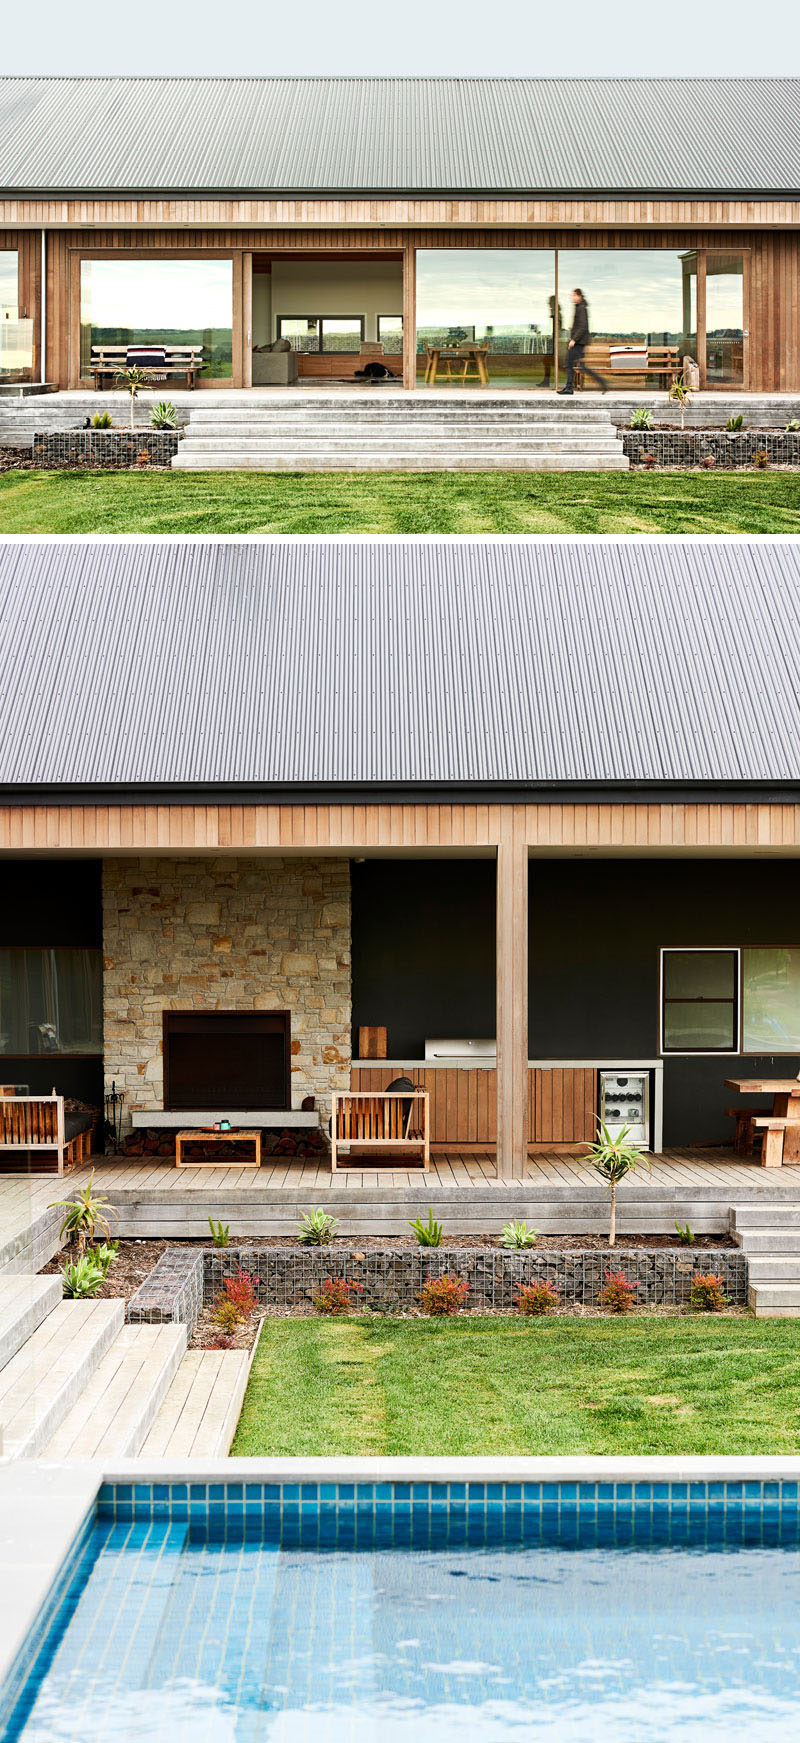 This modern house has a wrap-around deck that follows the shape of the house and allows for an outdoor living and kitchen area with a barbecue.